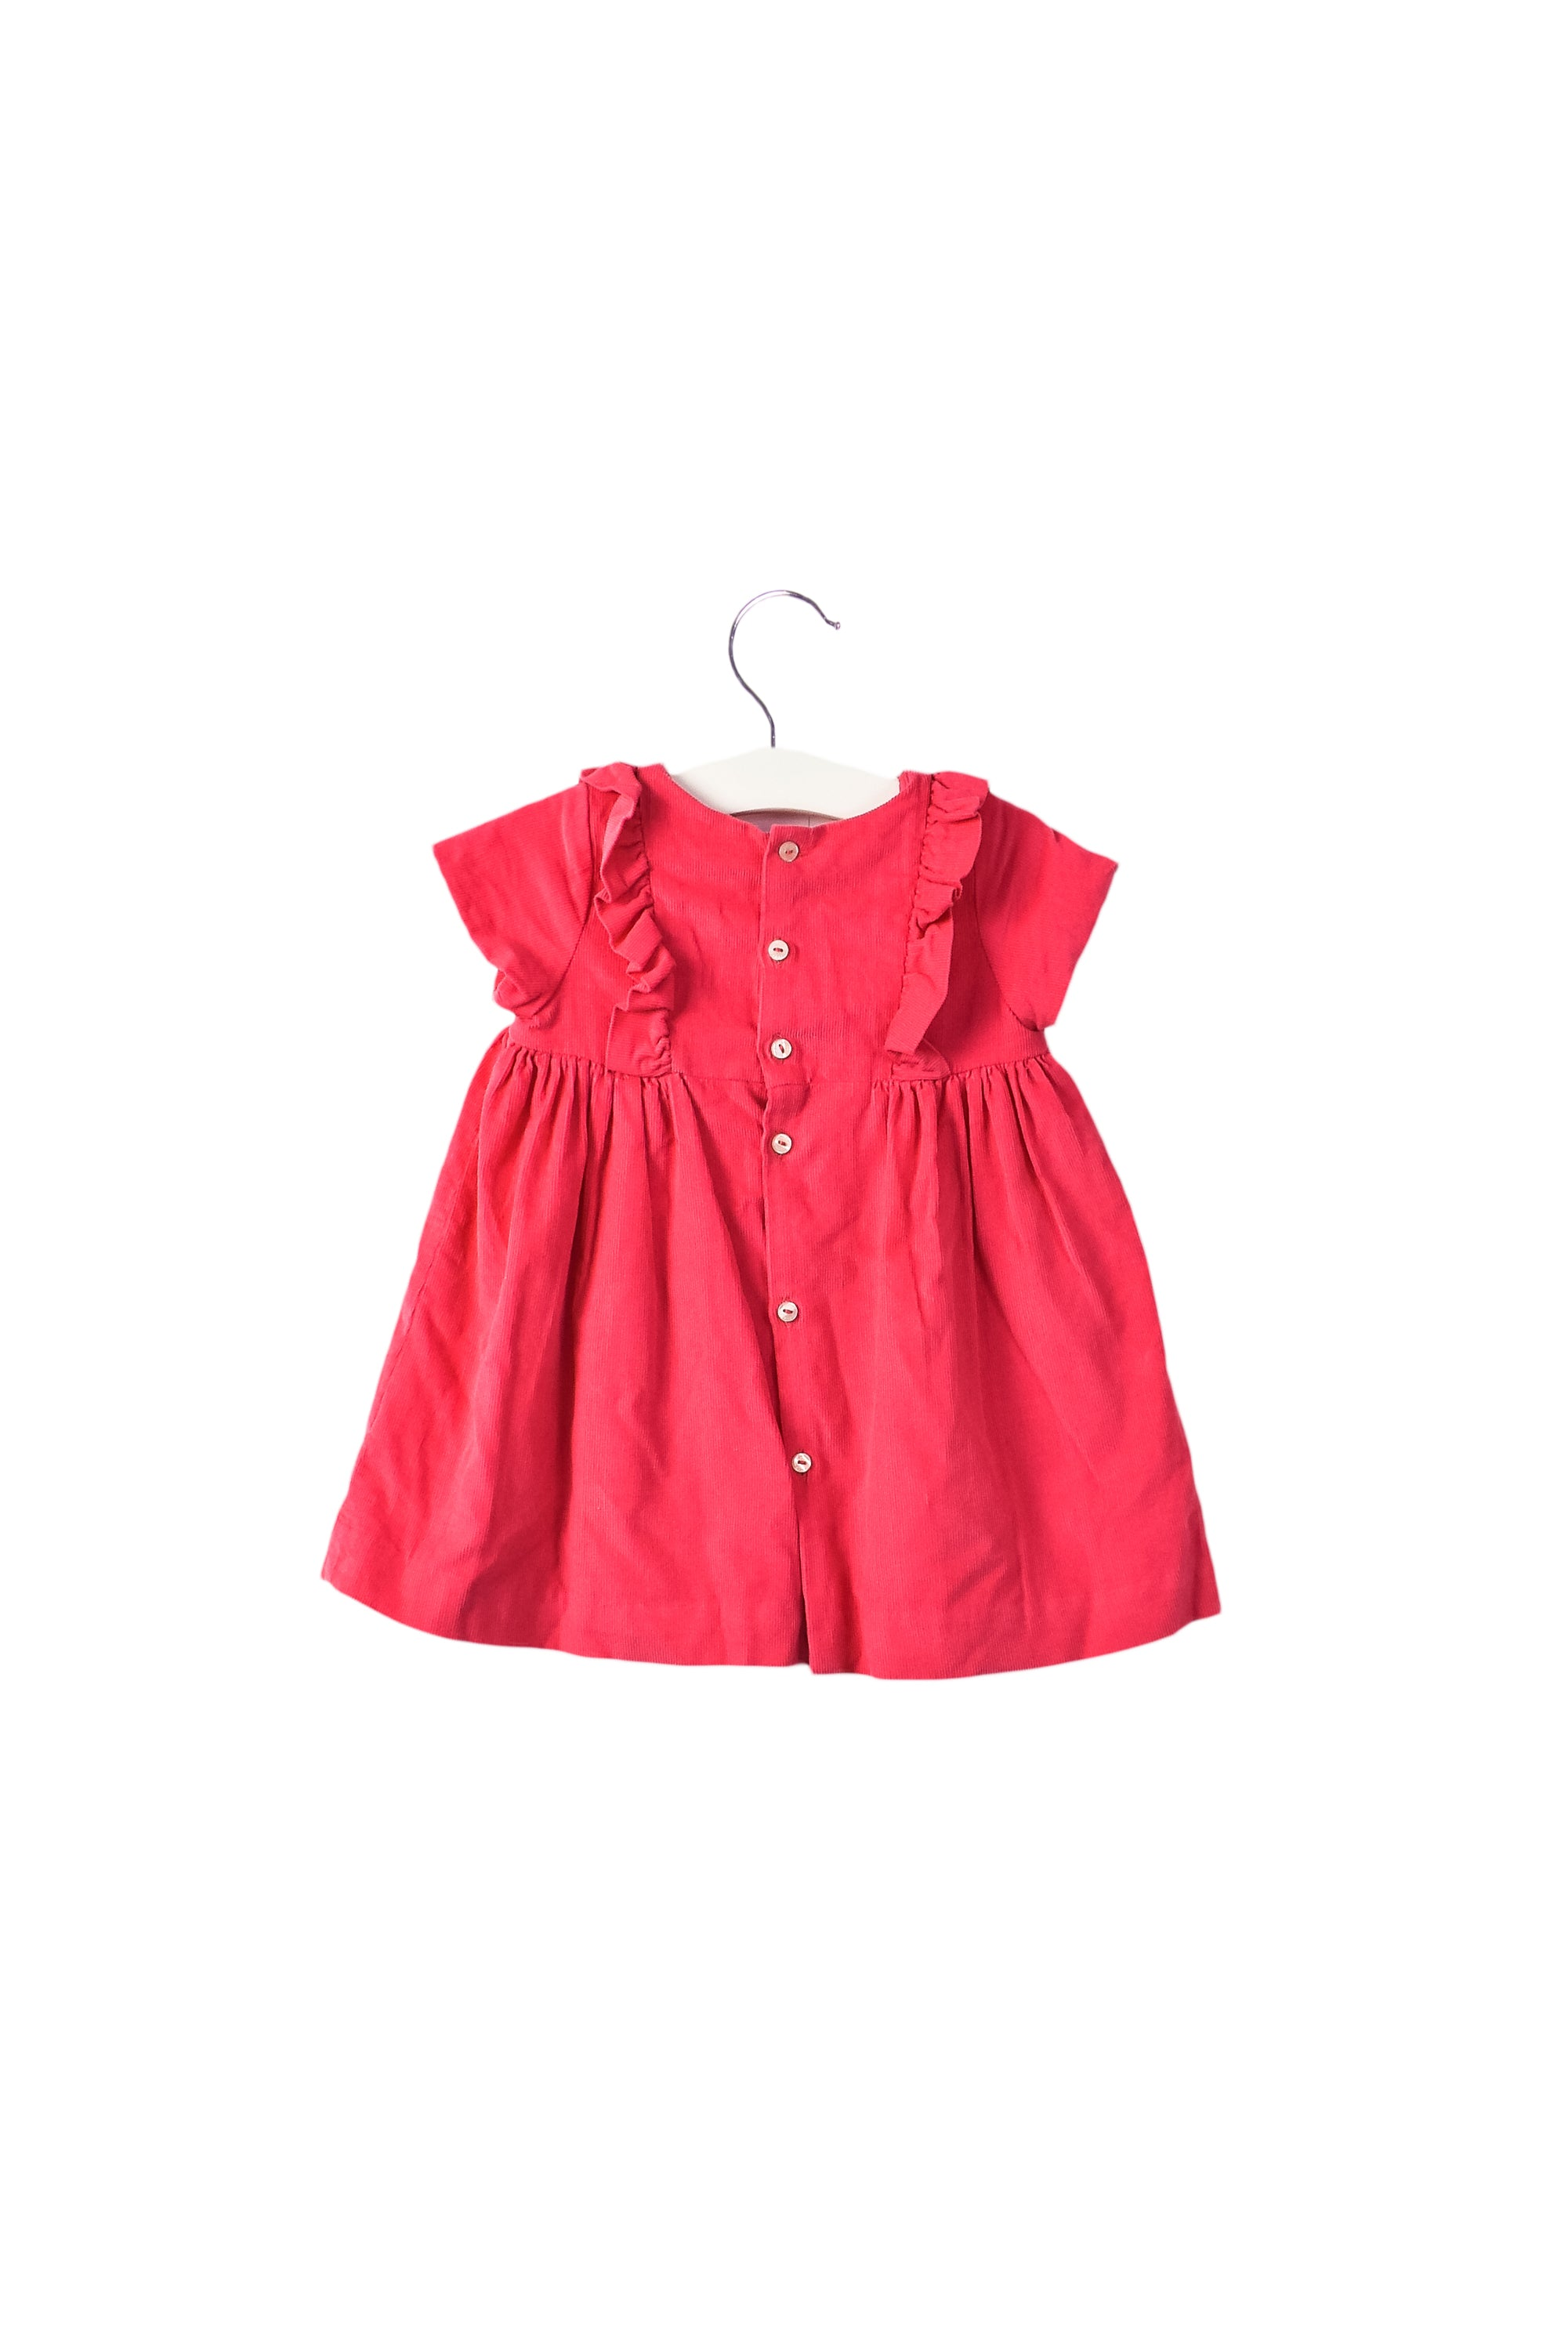 10033355 Jacadi Baby~Dress 12M at Retykle